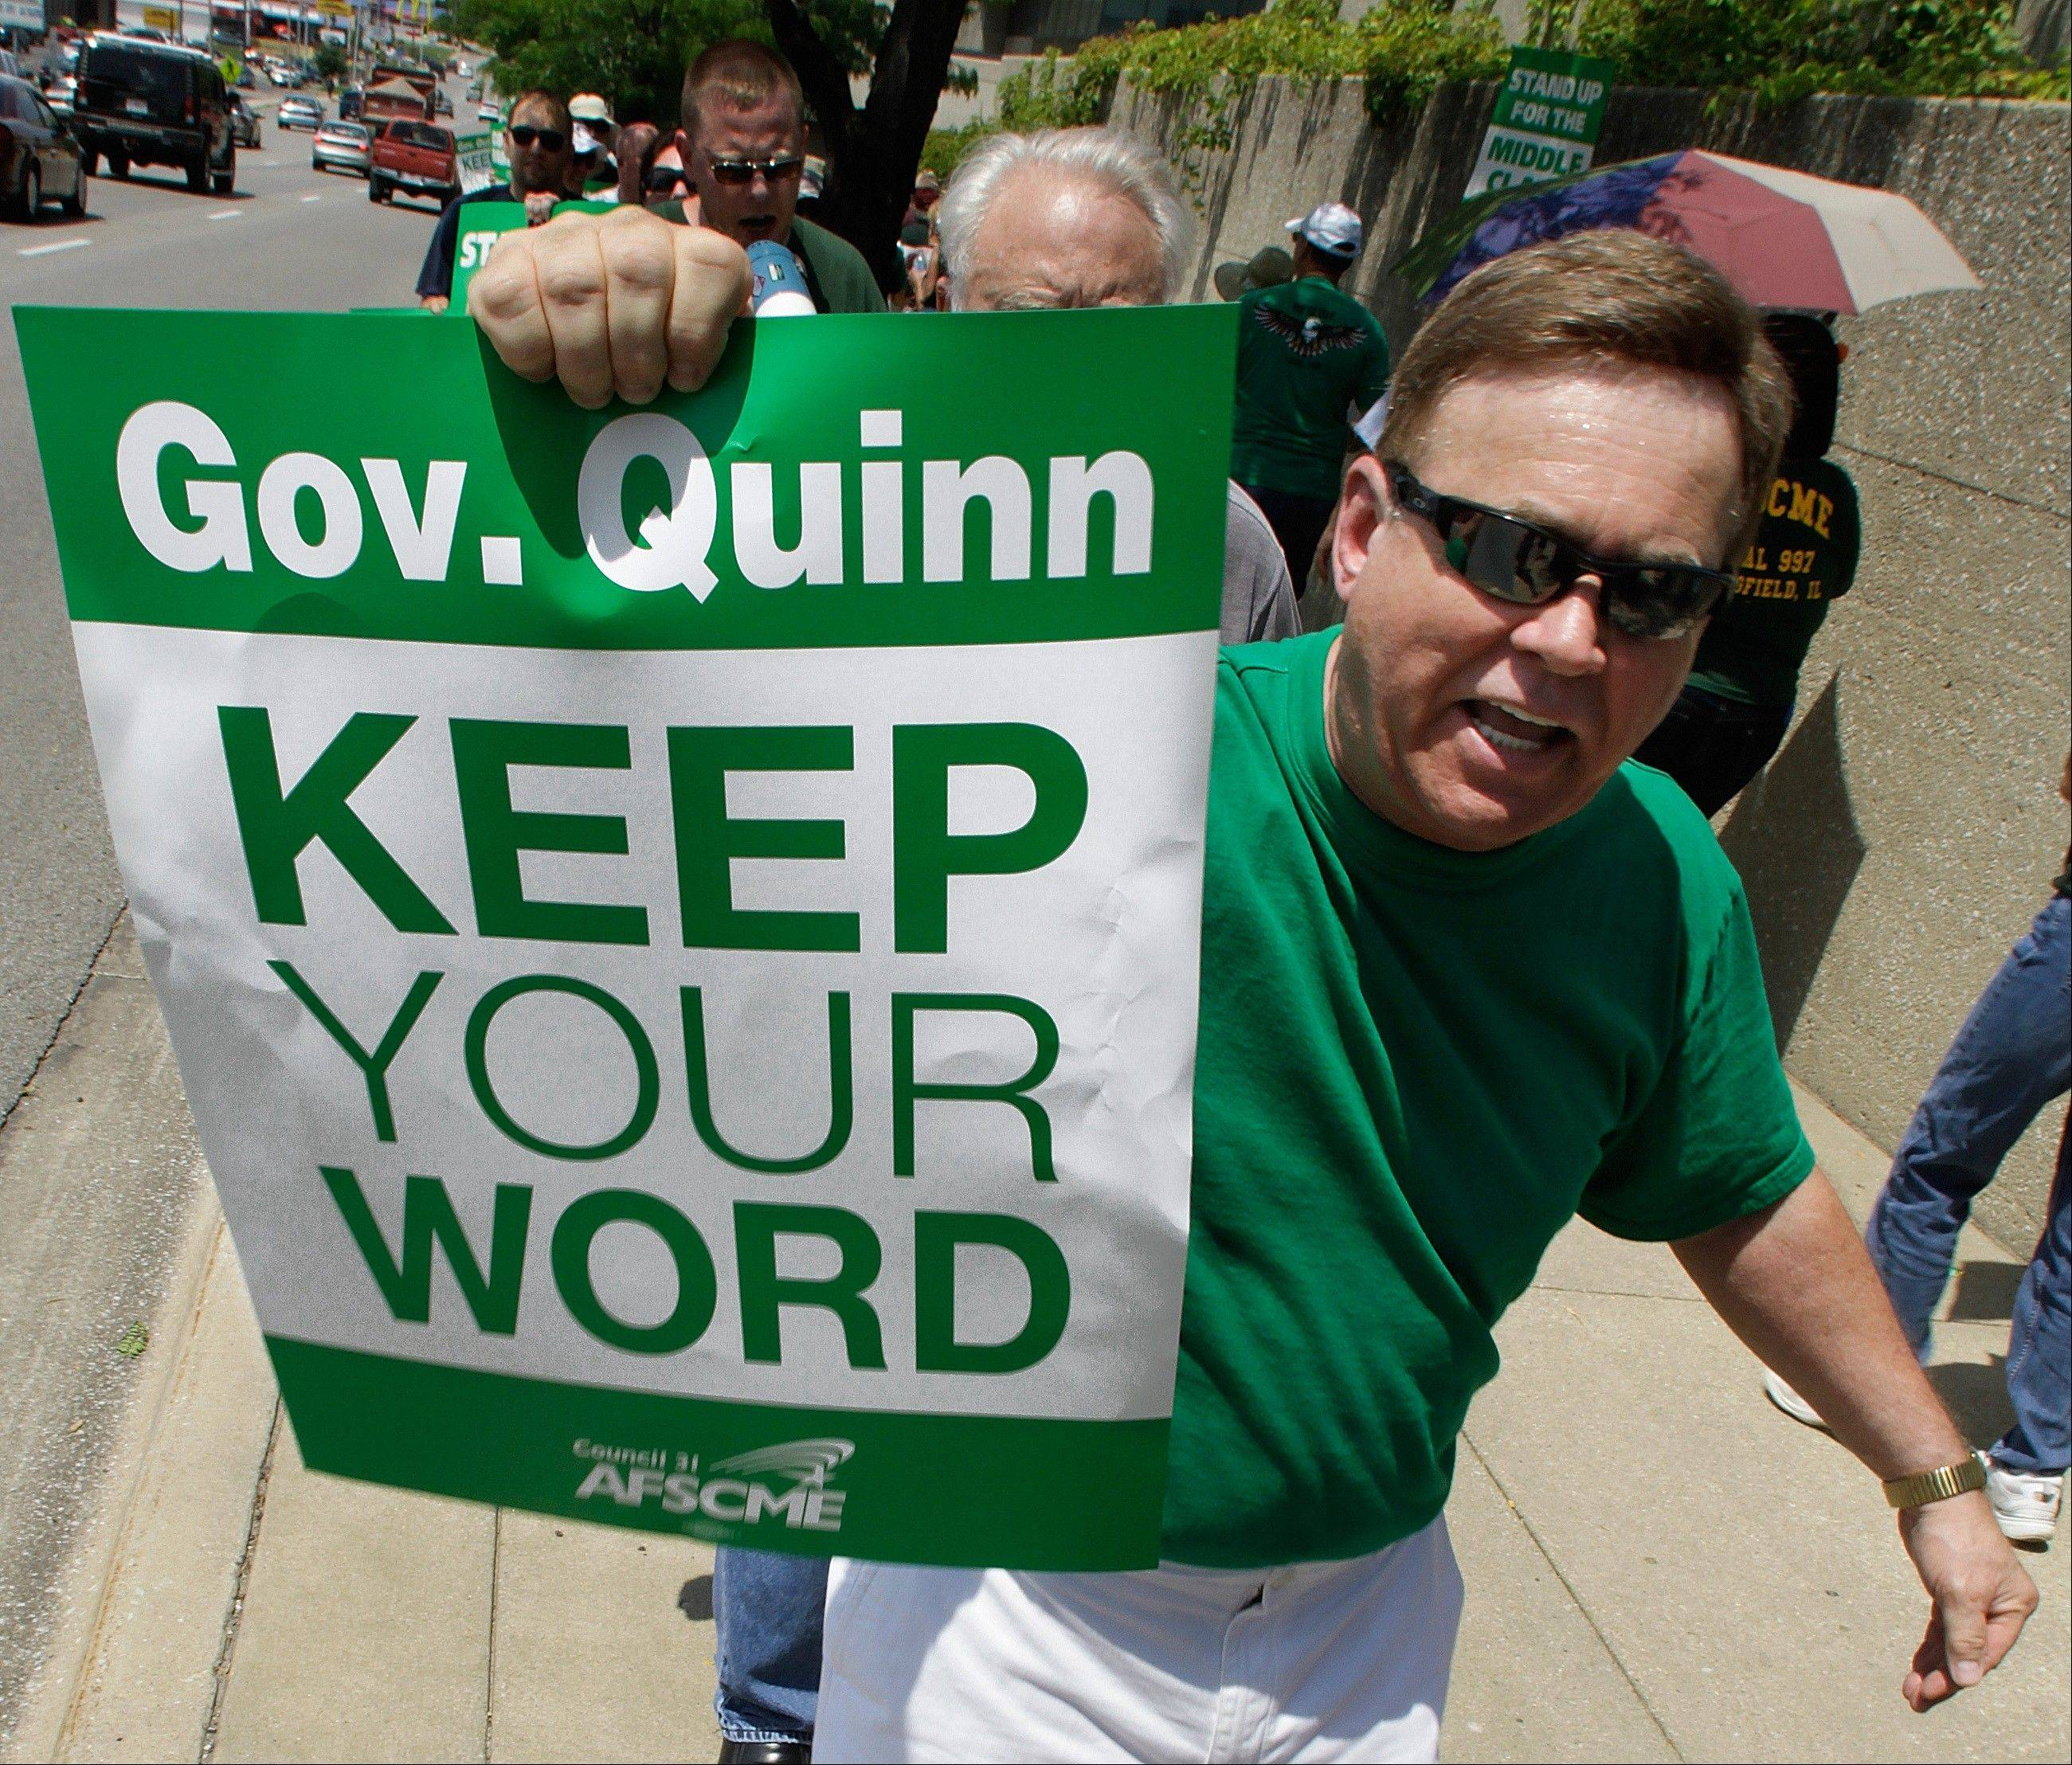 American Federation of State, County and Municipal Employees, AFSCME, walk an informational picket line July 12 in Springfield to protest Quinn�s decision not to pay their contractual raises.